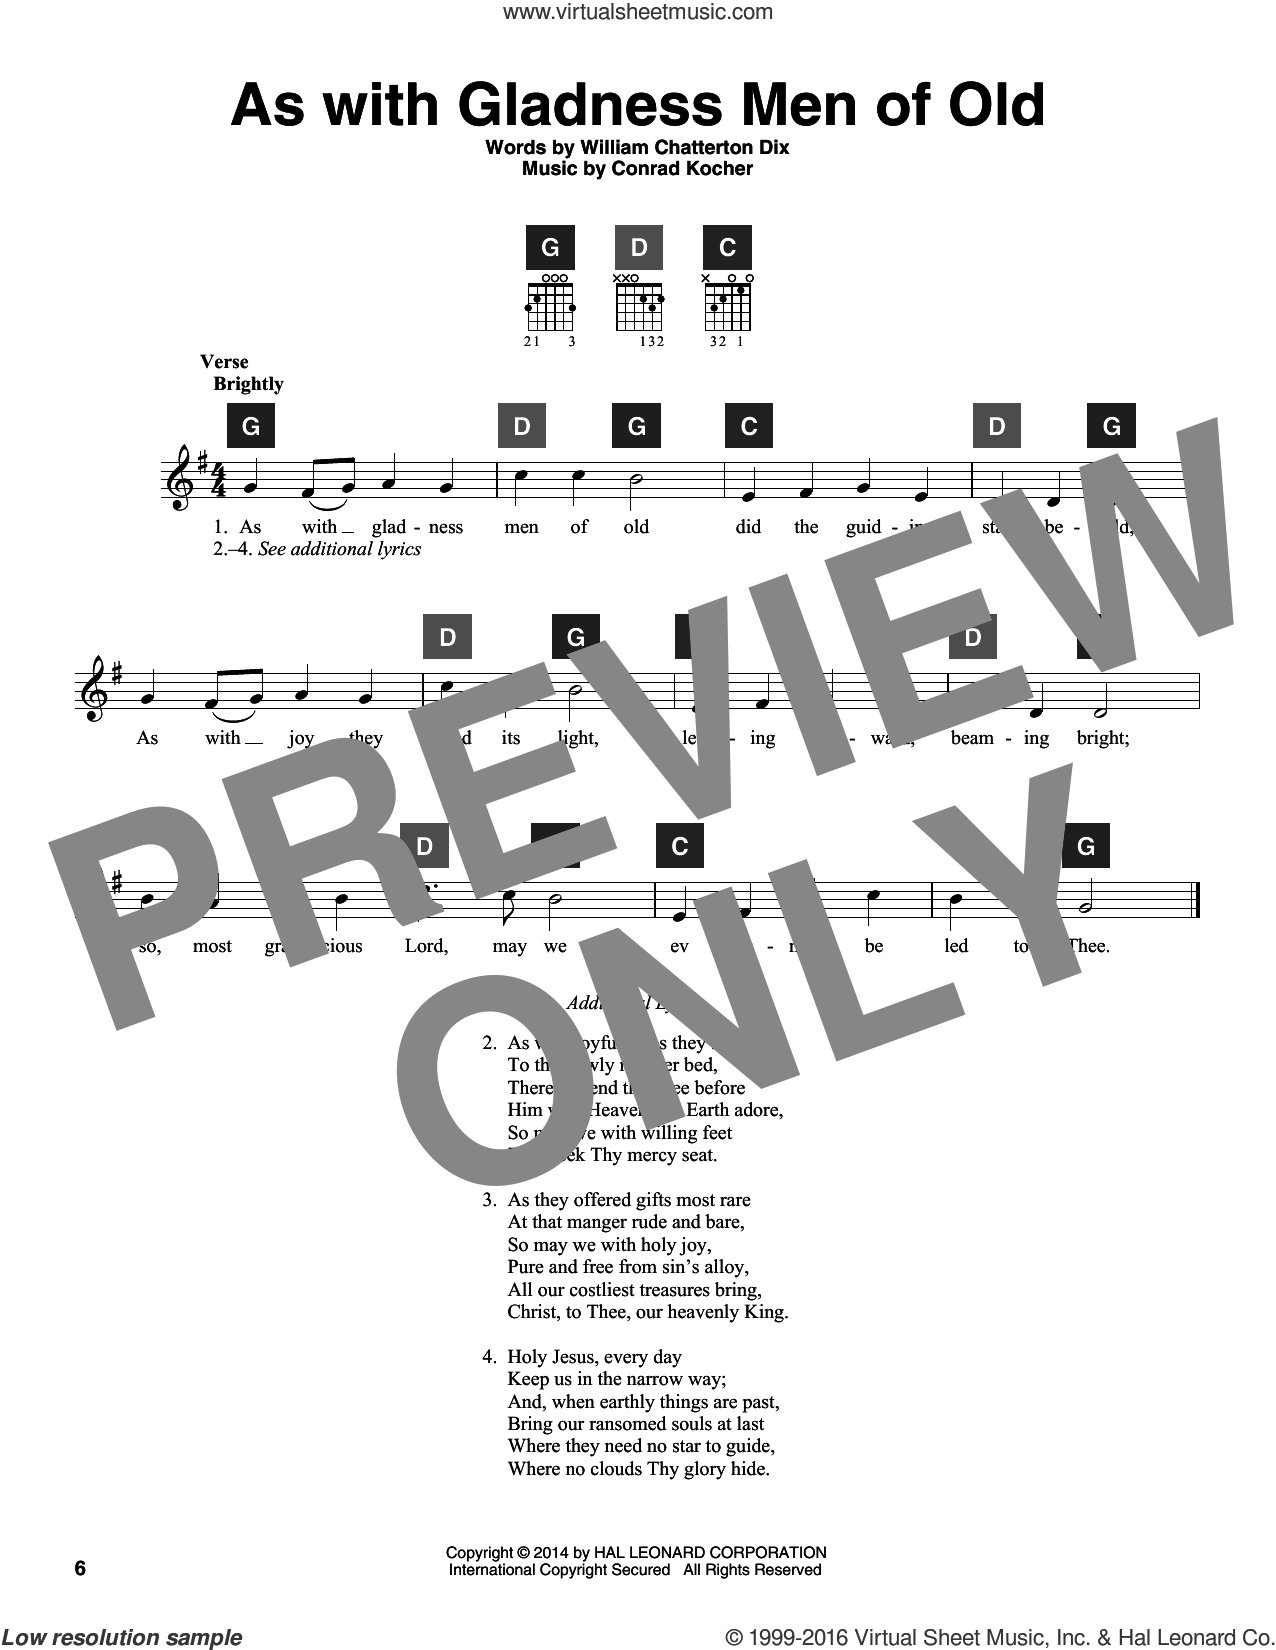 As With Gladness Men Of Old sheet music for guitar solo (ChordBuddy system) by William Chatterton Dix, Travis Perry and Conrad Kocher, intermediate guitar (ChordBuddy system)